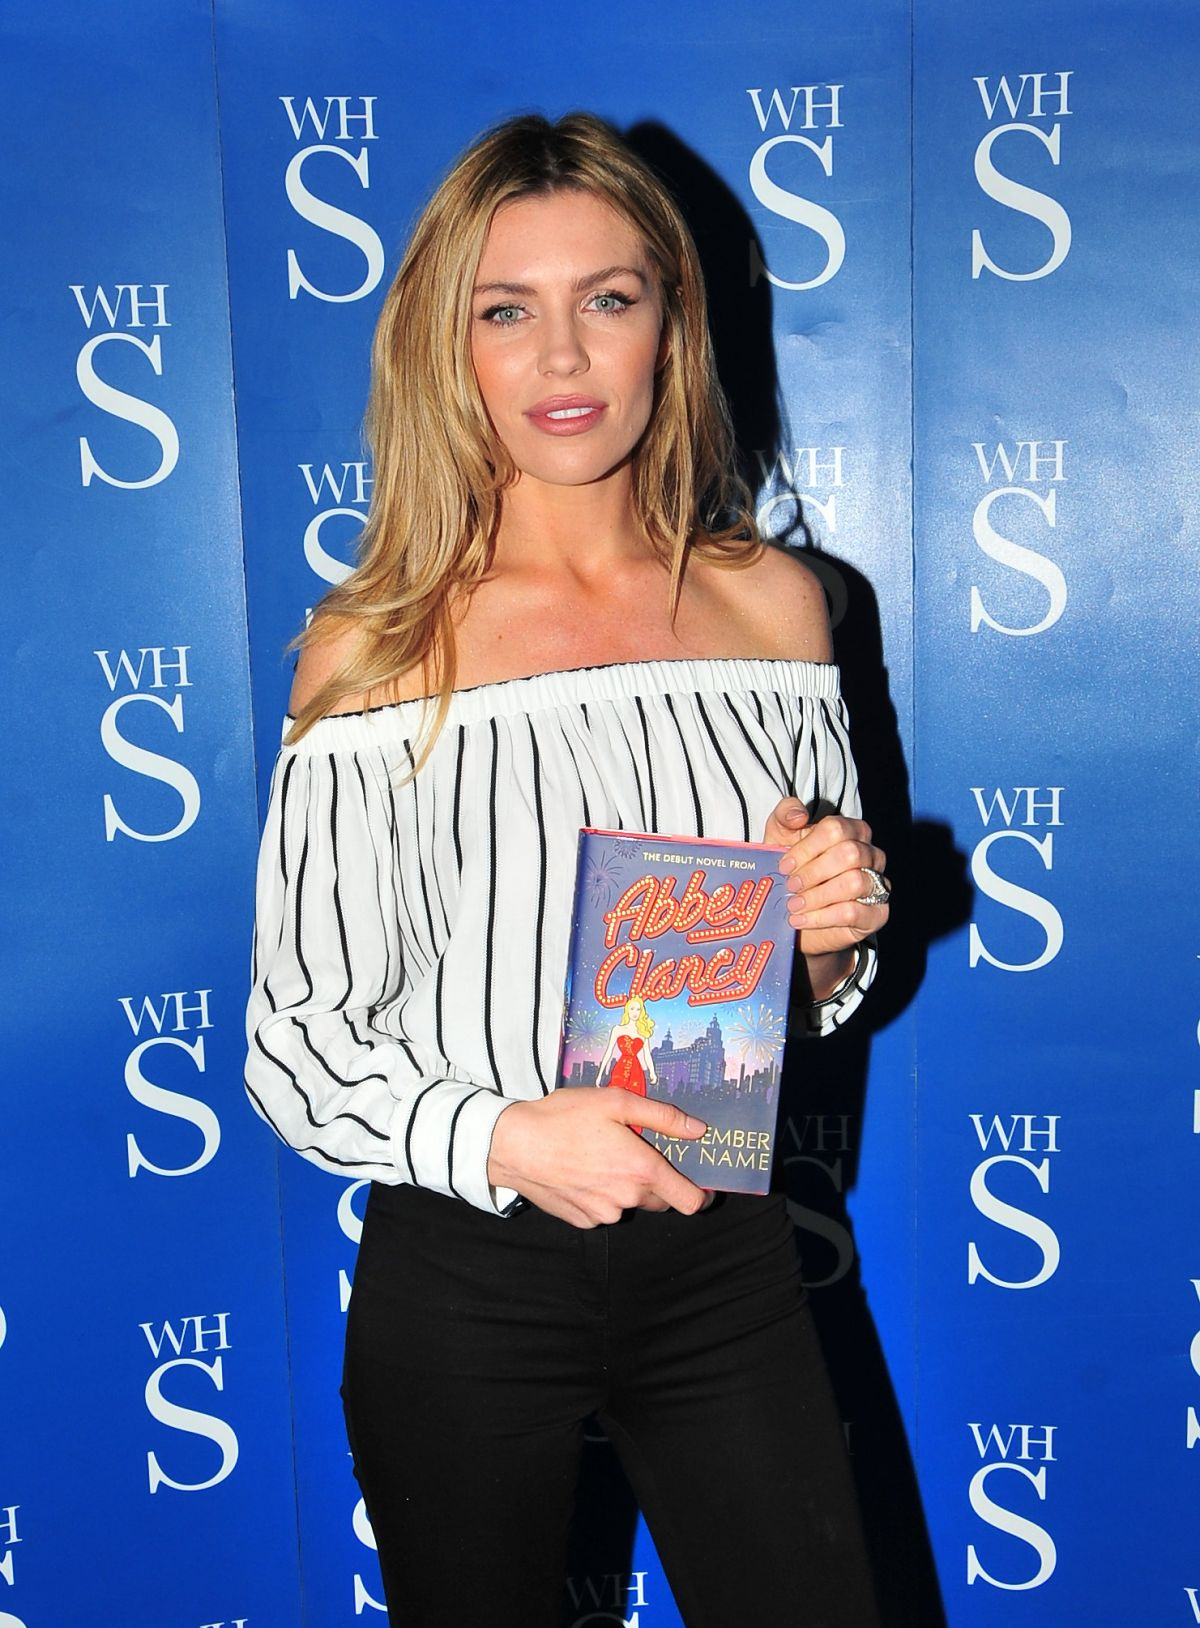 ABIGAIL ABBEY CLANCY at Her